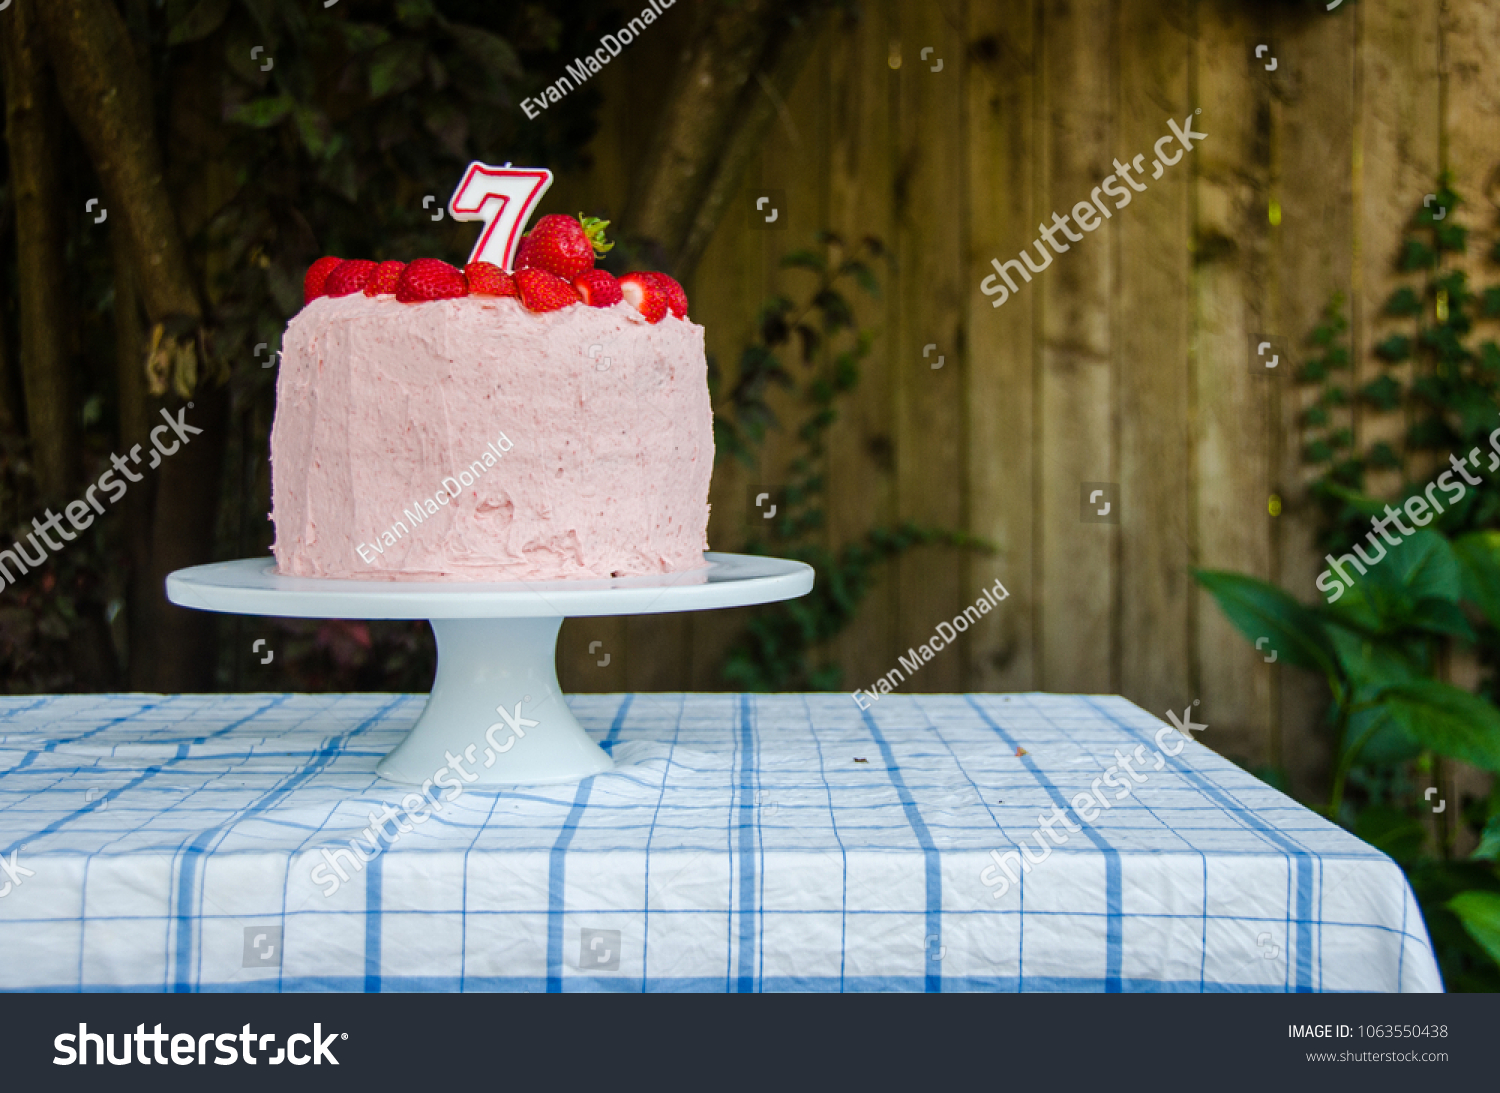 A Pink Frosted Birthday Cake On Table Outside With Strawberries And Candle Top